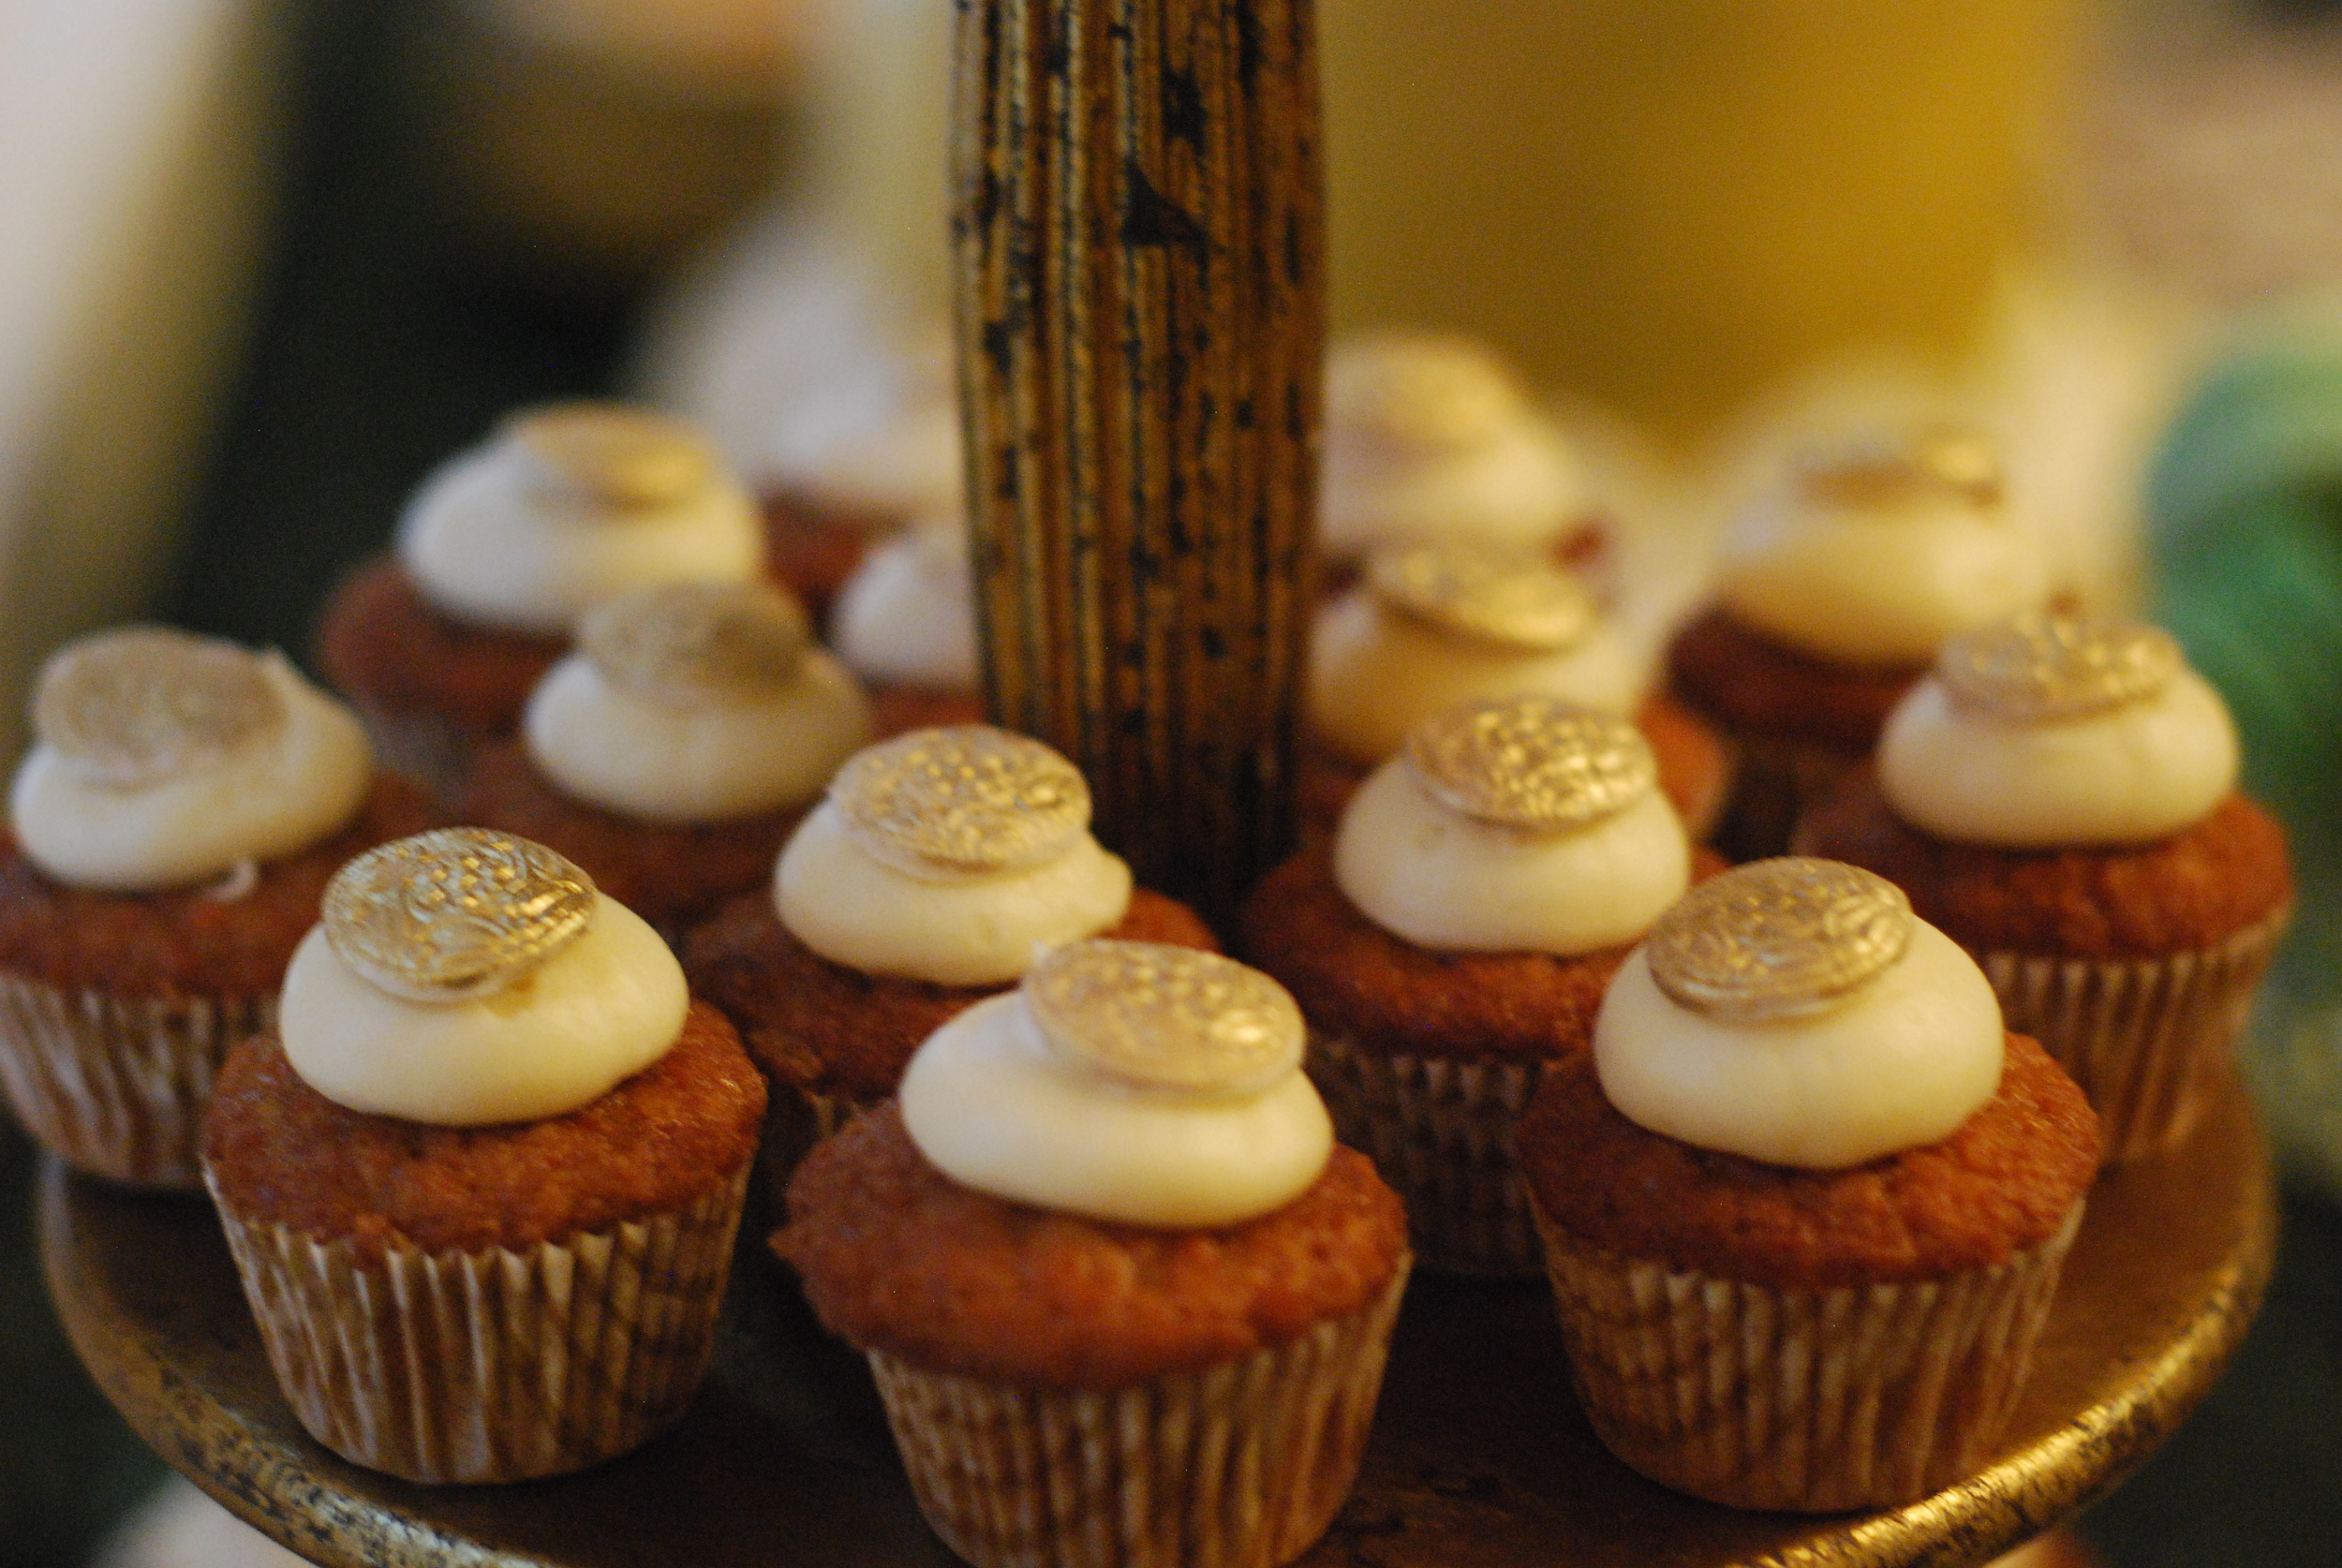 Carrot cake cupcakes with cream cheese frosting and sugar medallions